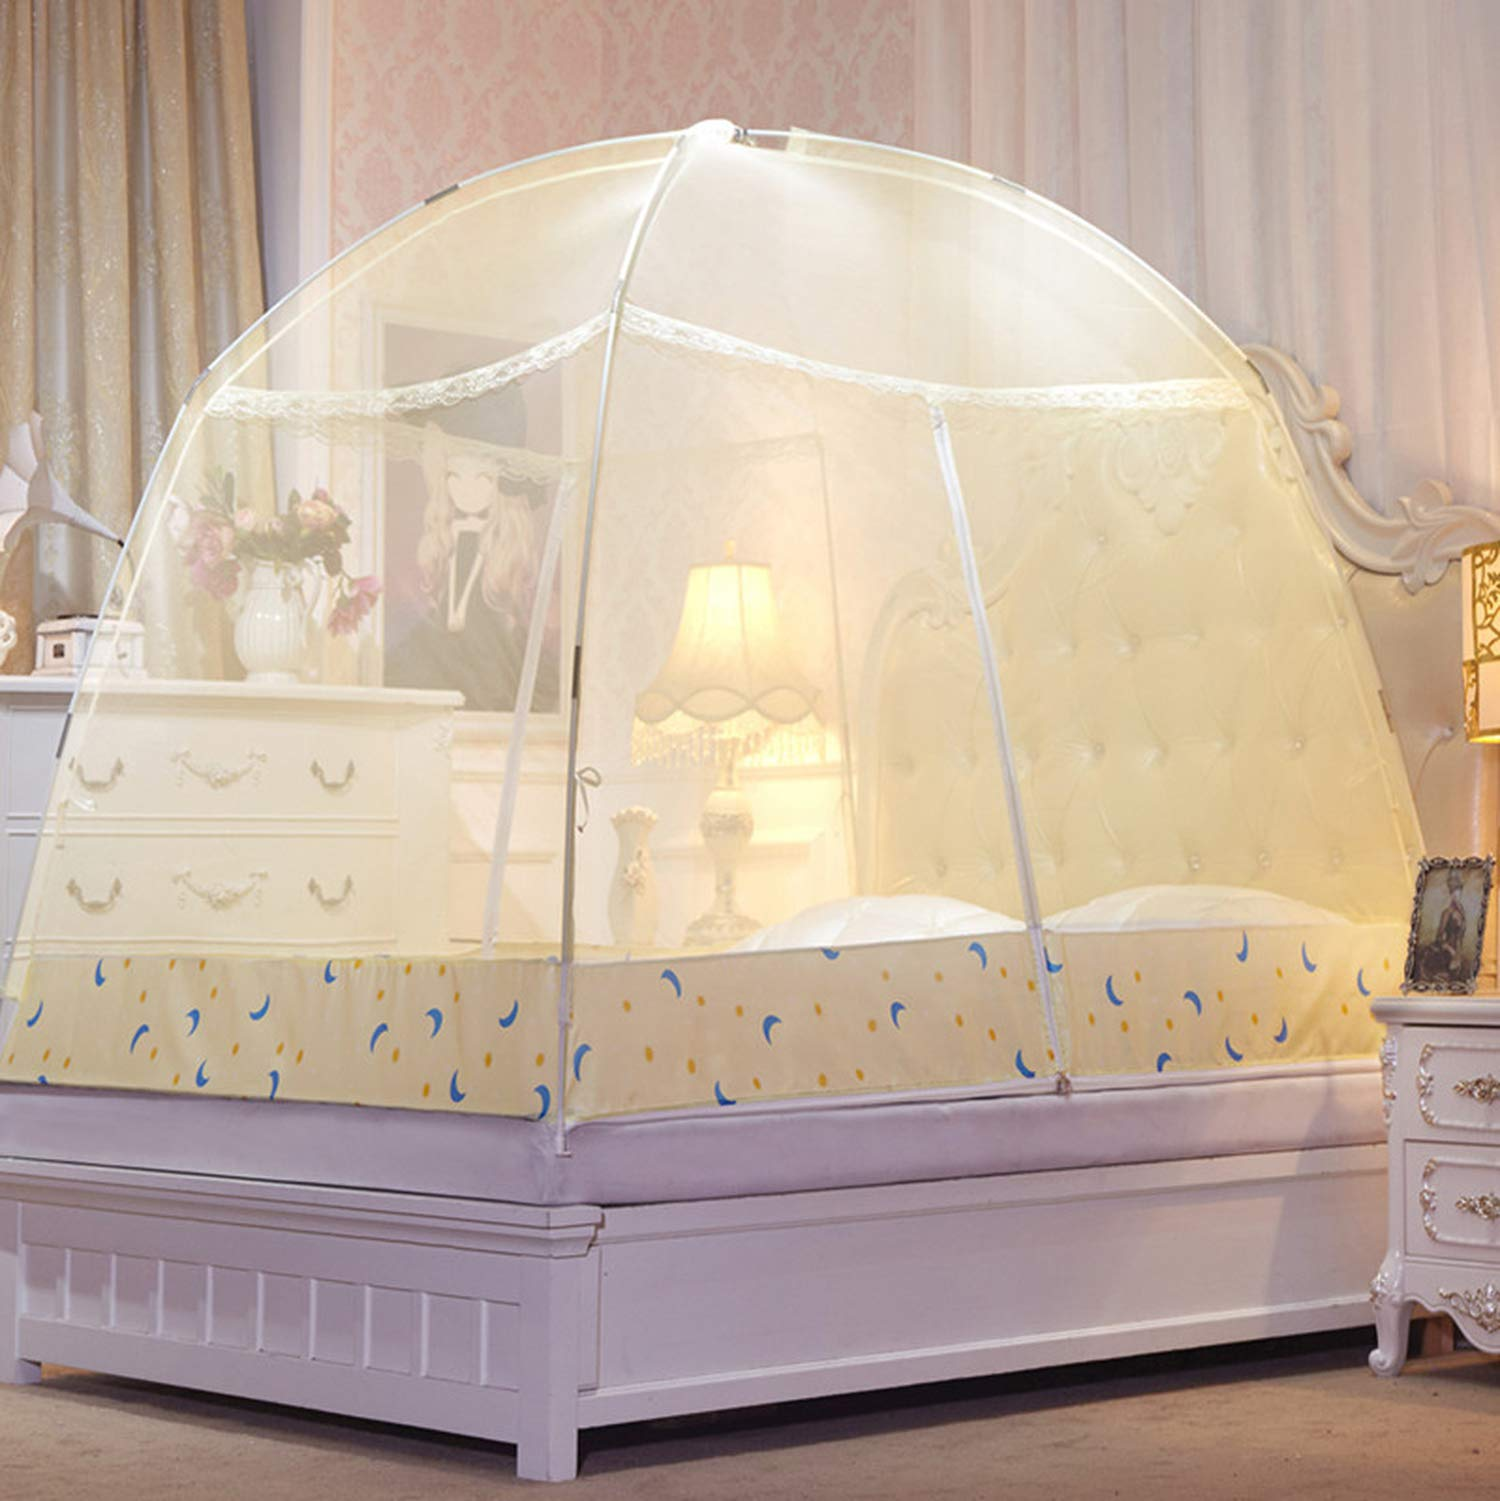 Romantic Purple Dome Mosquito Net Double Door Polyester Fabric Bed Netting Canopy Mosquito Netting Folding Netting Tent Bed,White,1.5m (5 feet) Bed by SuWuan mosquito net (Image #3)